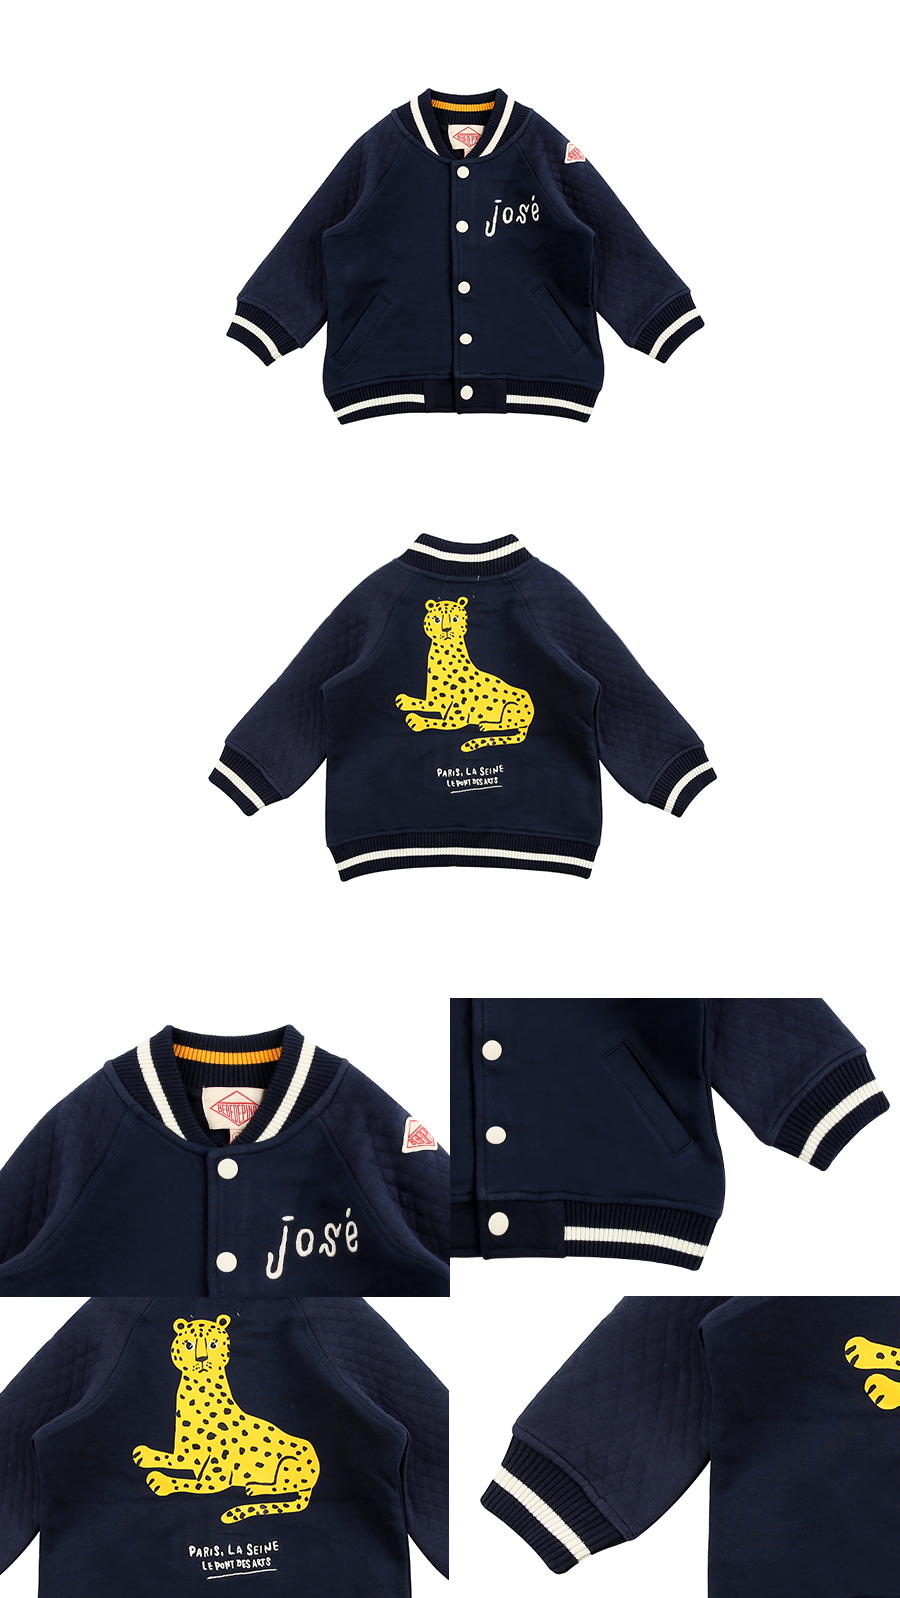 Jose baby baseball jumper 상세 이미지